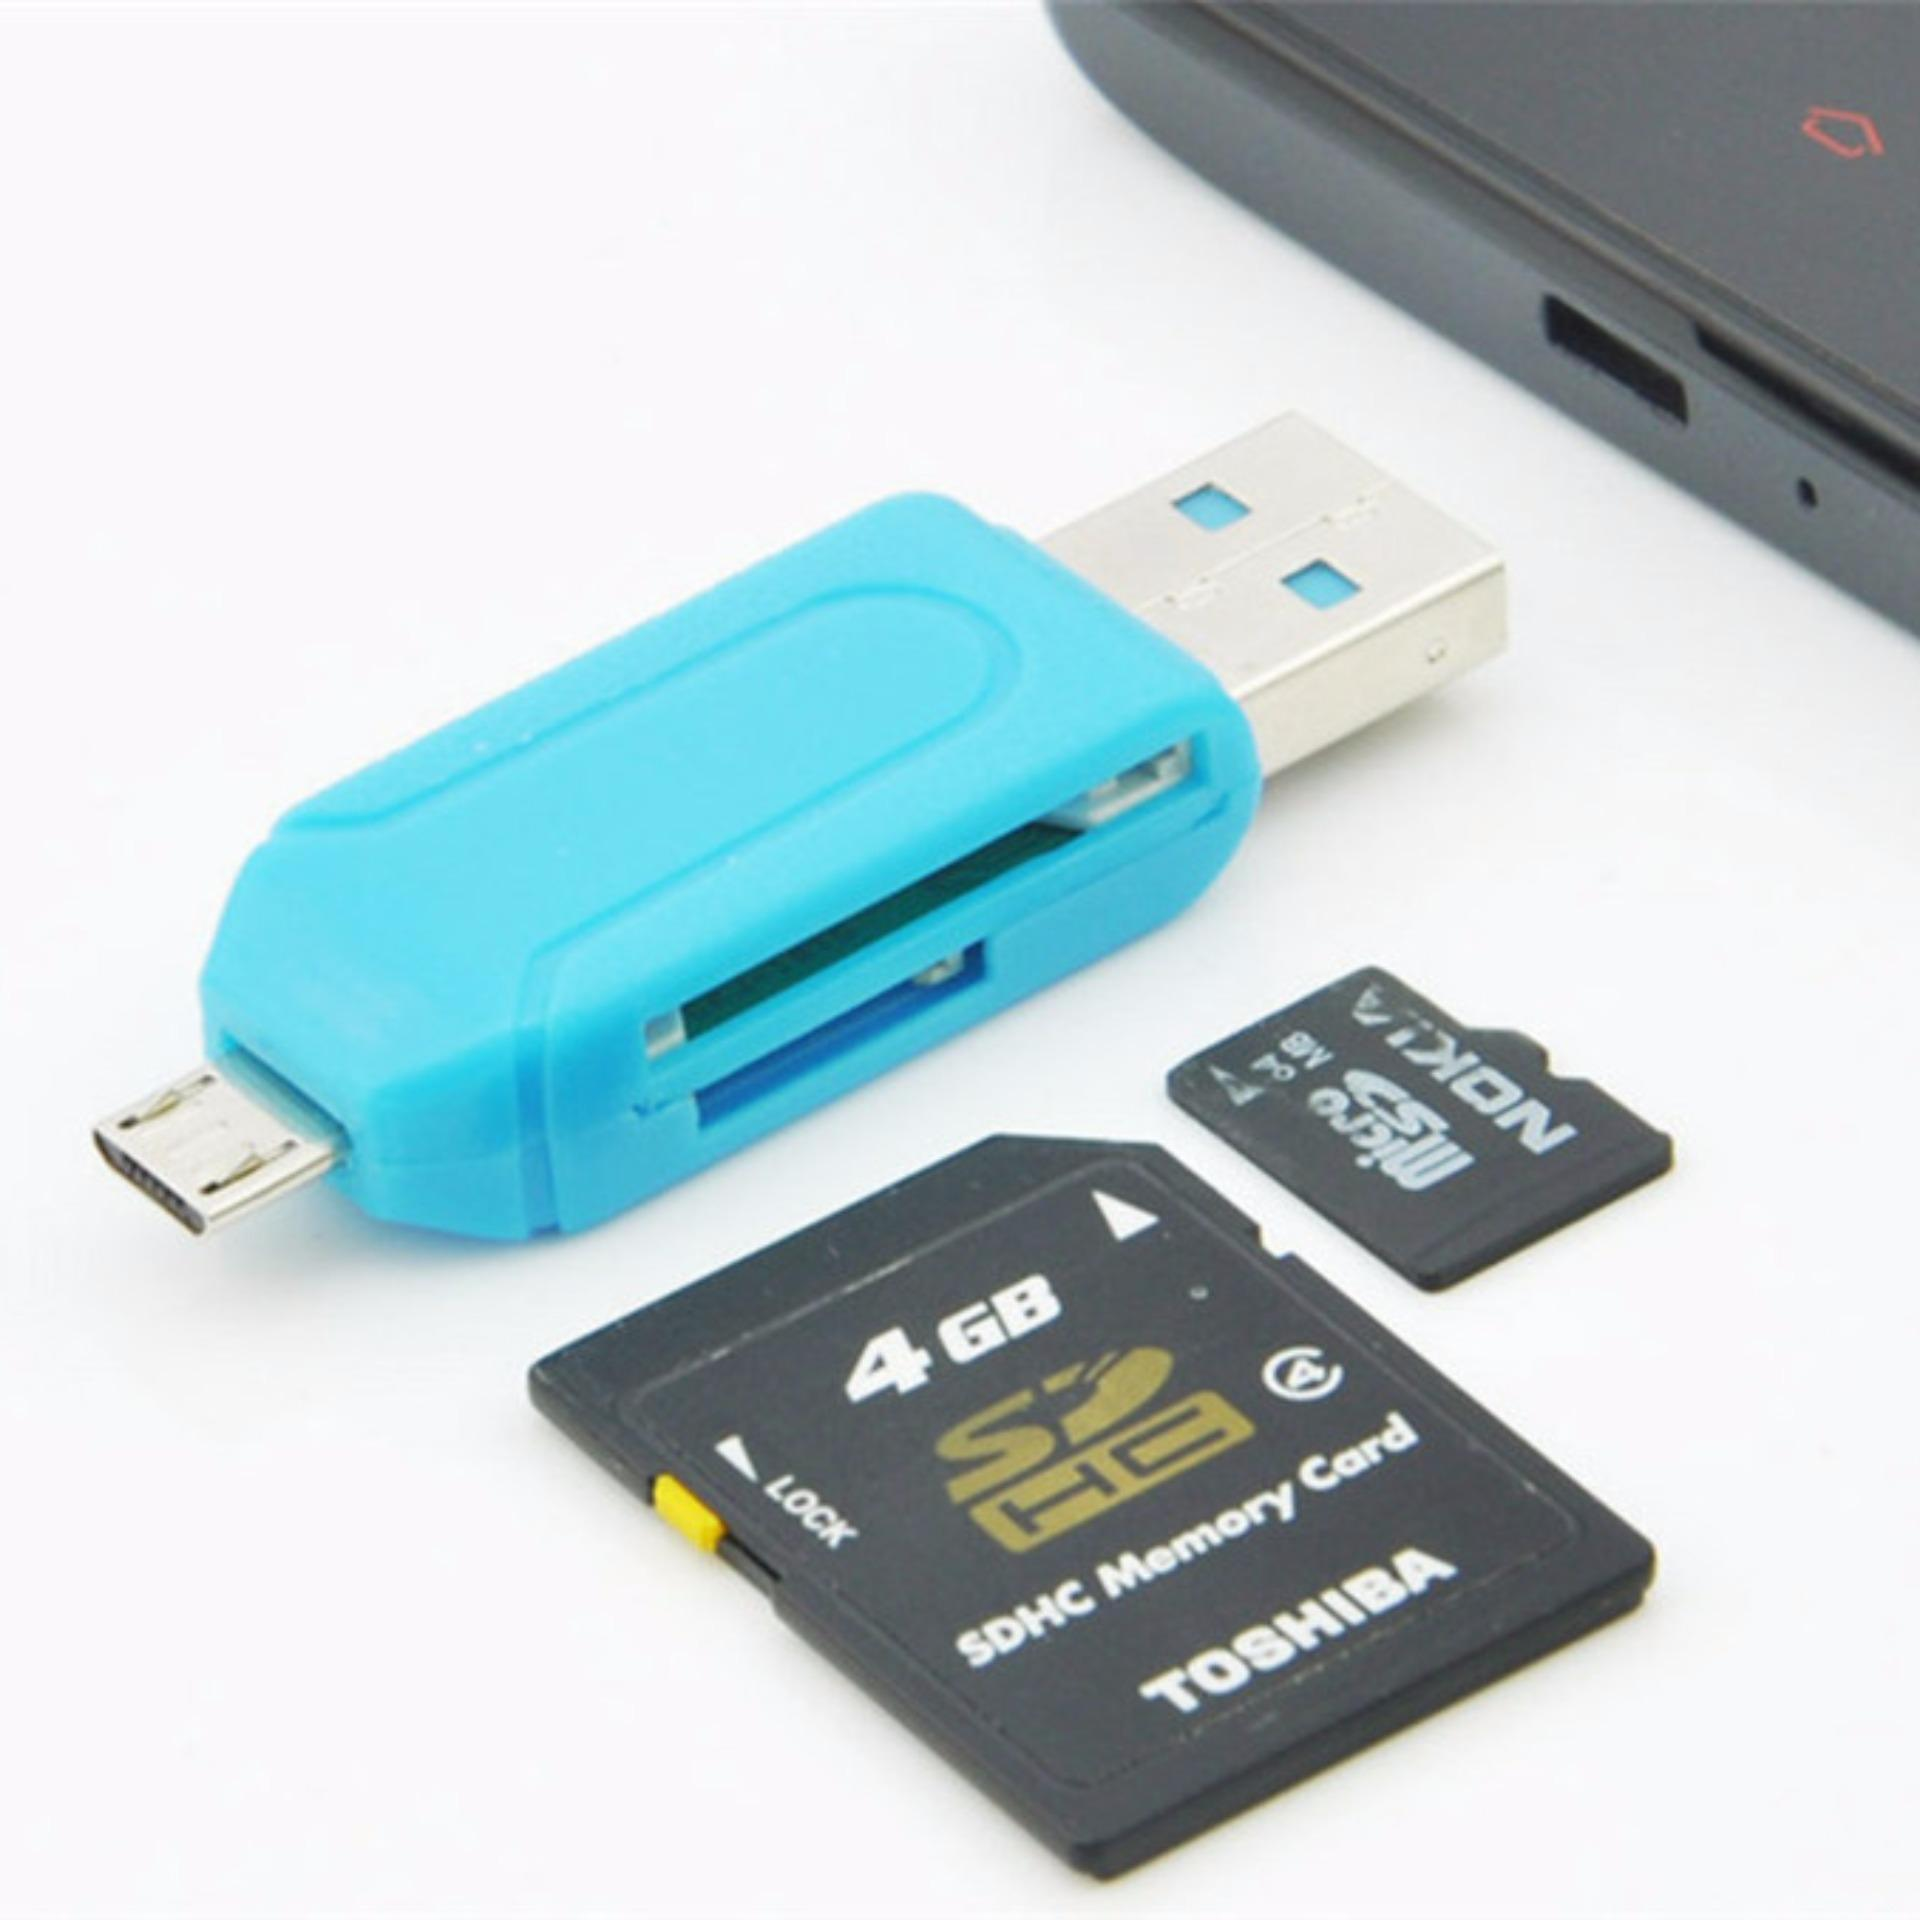 Vgen Sdcard 32gb 32 Gb Class 10 Turbo Series Up To 85 Mbps V Gen Micro Sd Memory Card Page 2 Daftar Original Free Otg Reader